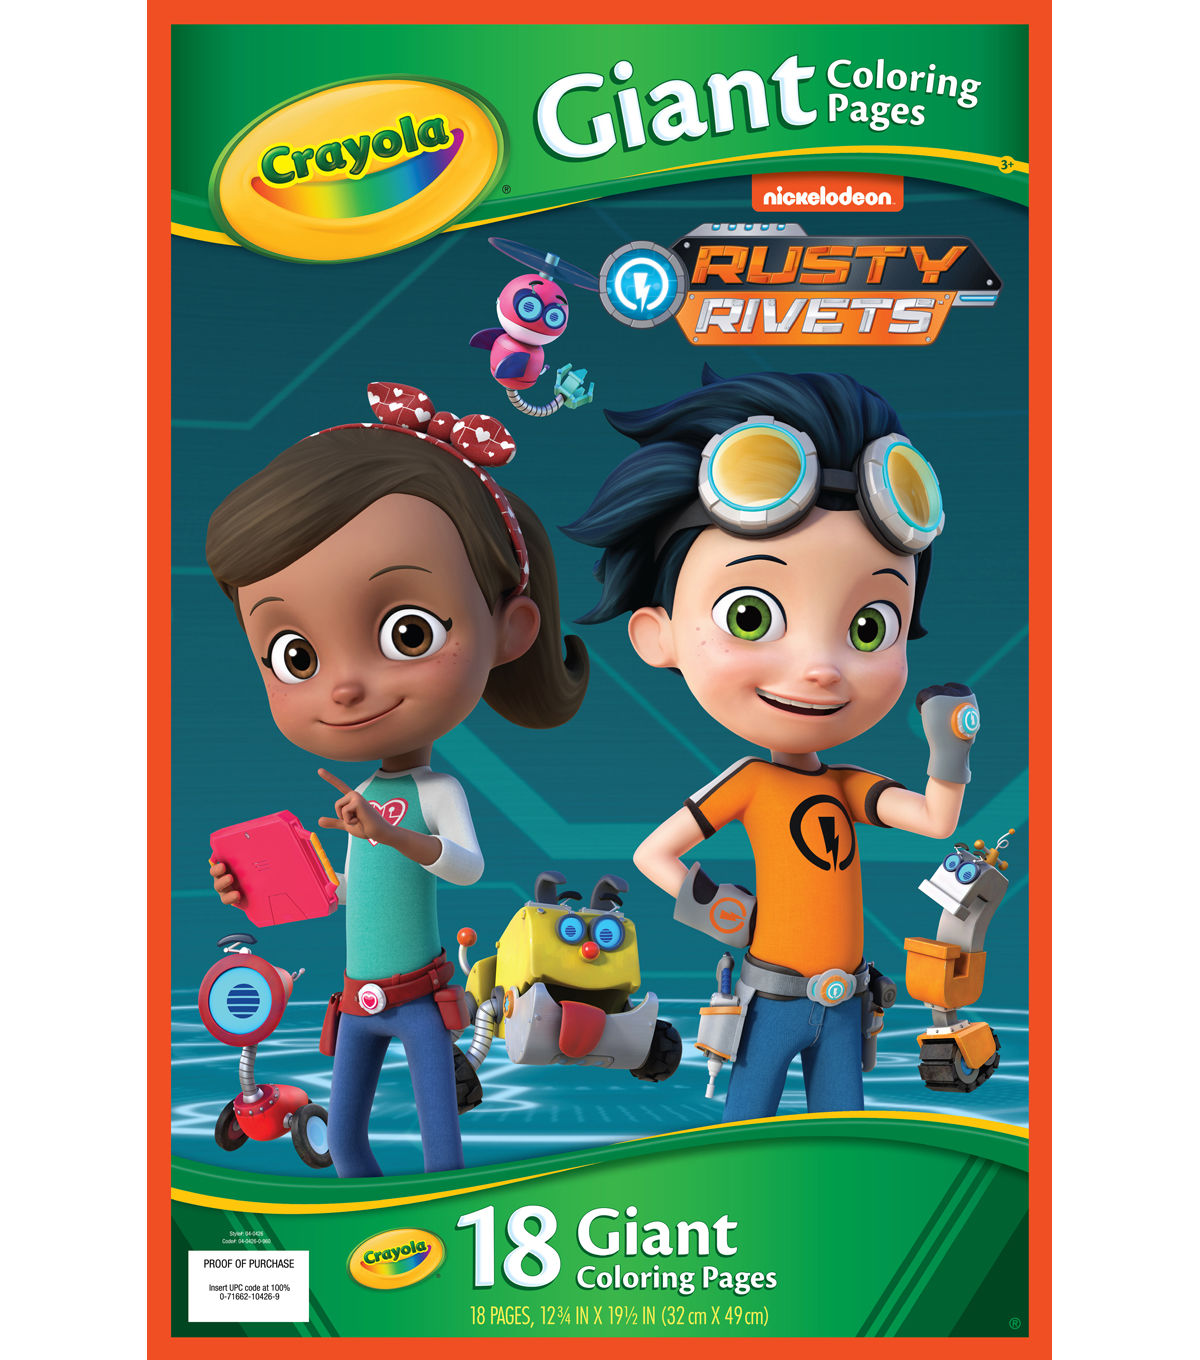 Crayola Giant Coloring Pages 12 75 X19 5 Rusty Rivets Joann Coloring Pages Crayola Gifts For Kids